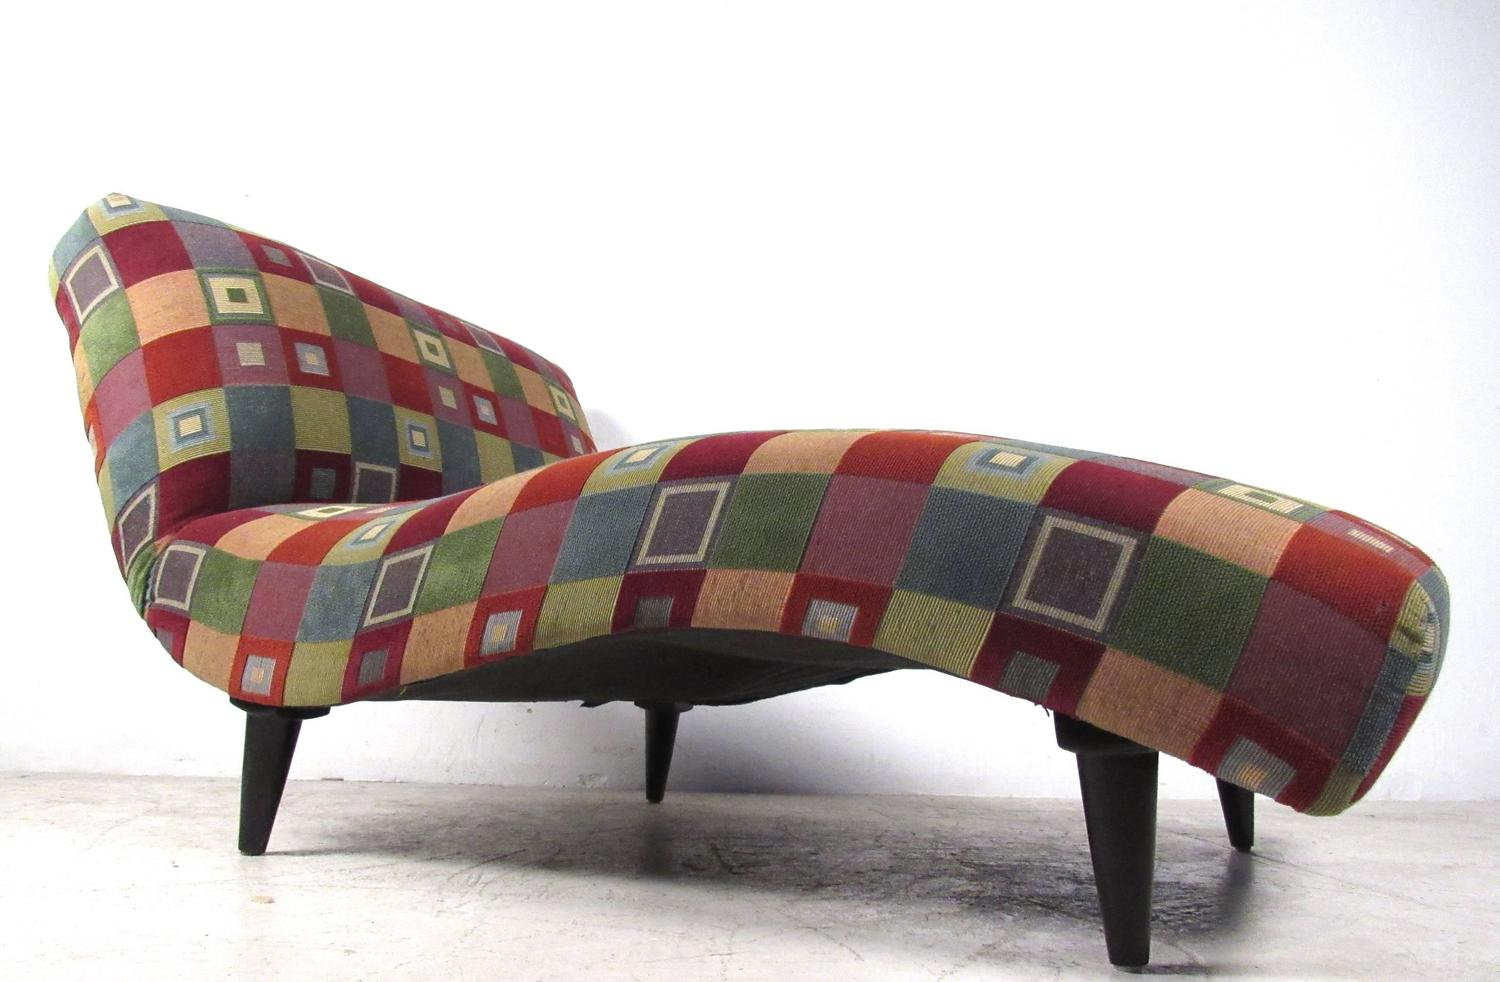 Mid century modern style chaise lounge for sale at 1stdibs - Mid century chaise lounge chair ...